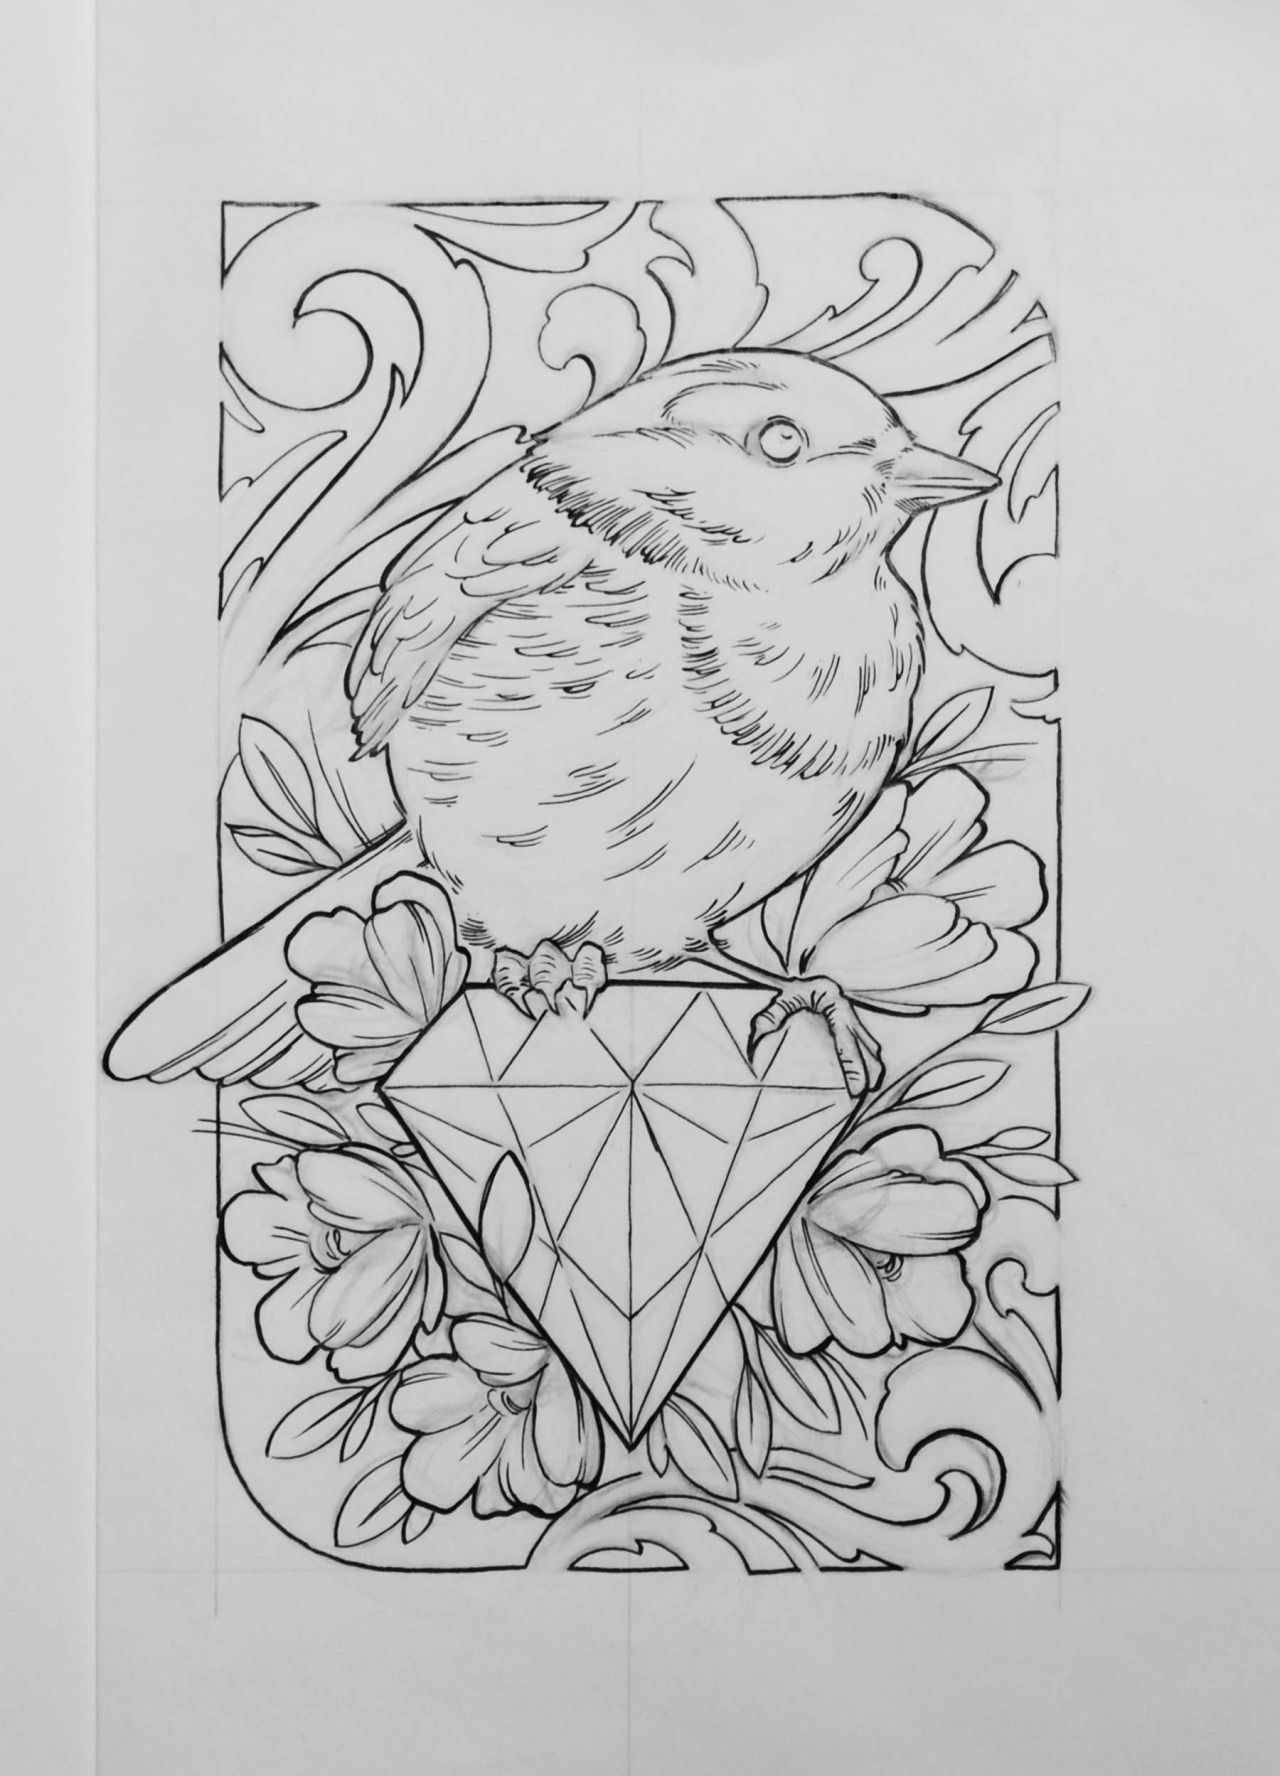 Traditional Tattoo Outlines : traditional, tattoo, outlines, Outline, Traditional, Tattoo, Designs, Tattoos, Gallery